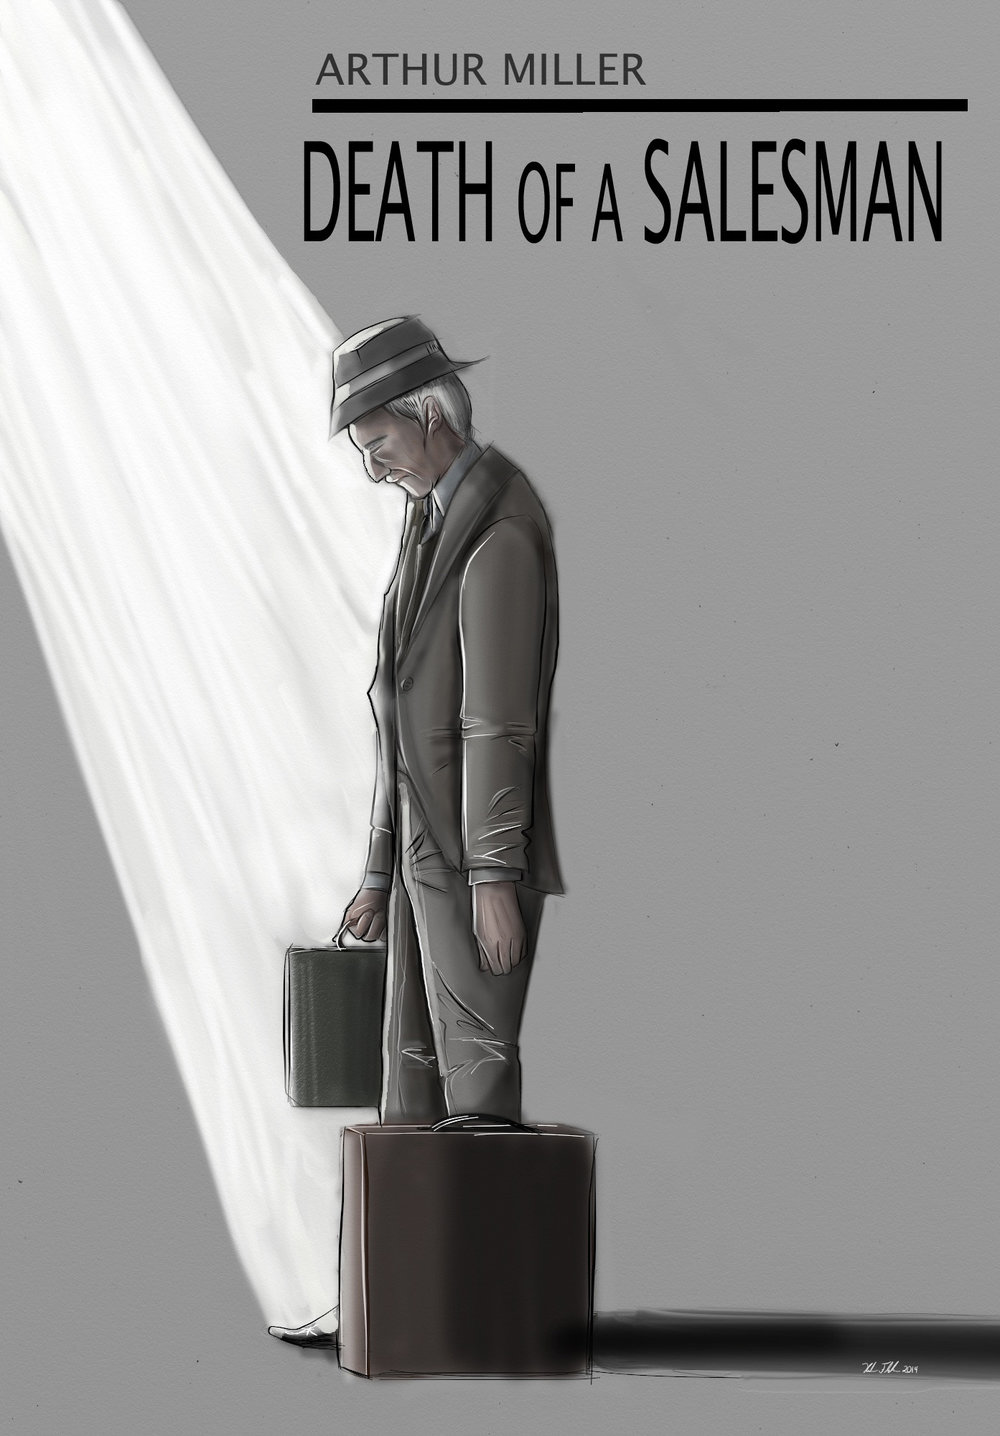 death of a salesman at playhouse22 � stephen lias